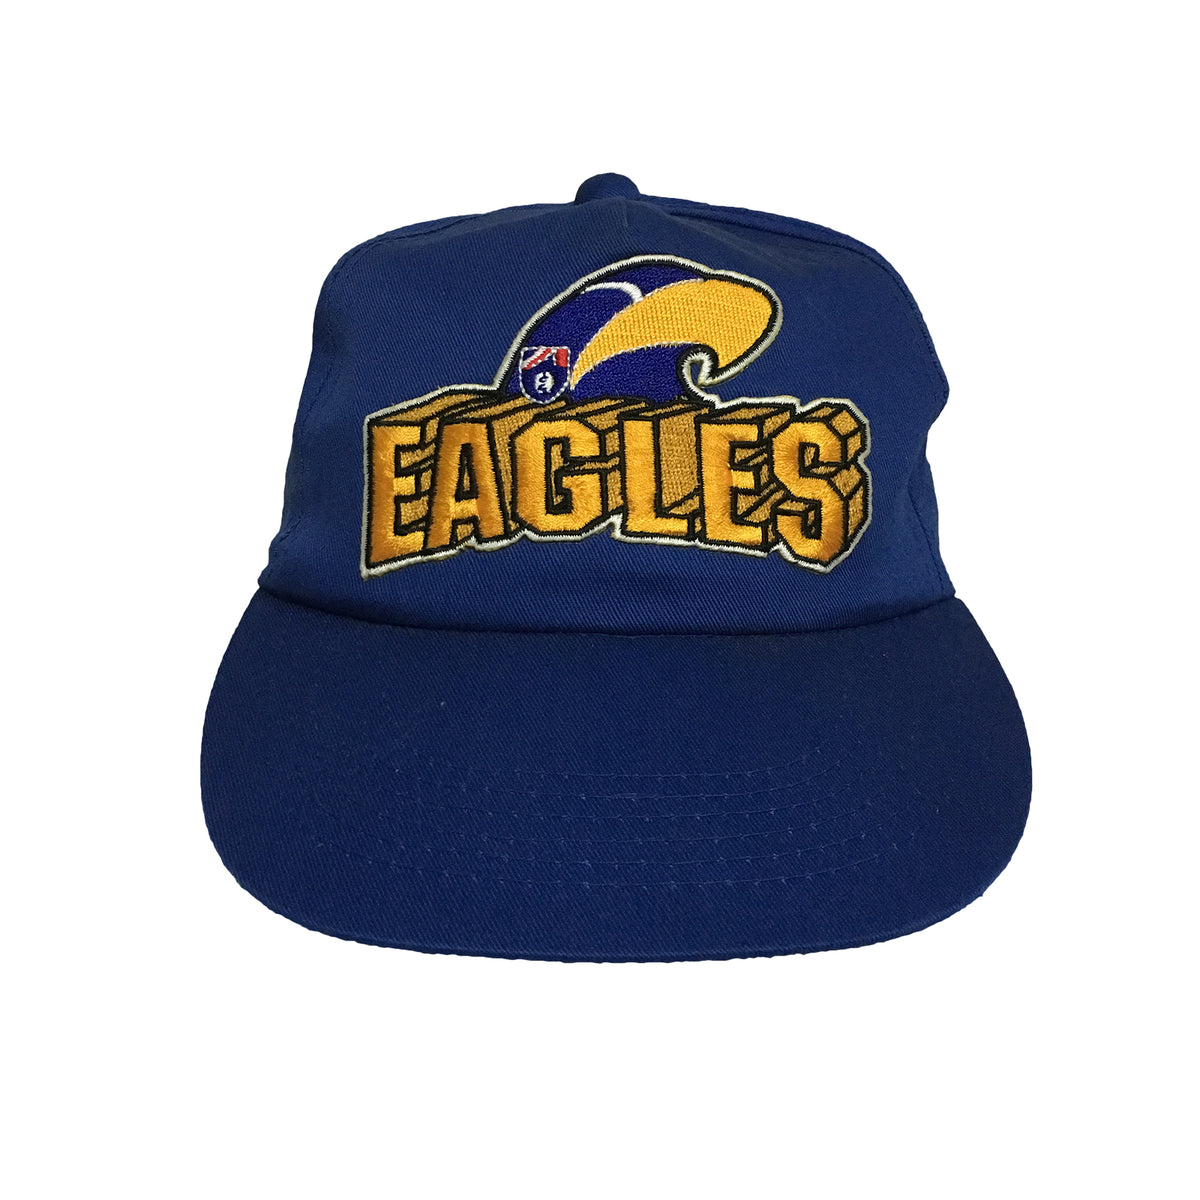 West Coast Eagles Vintage 1990's AFL Baseball Cap